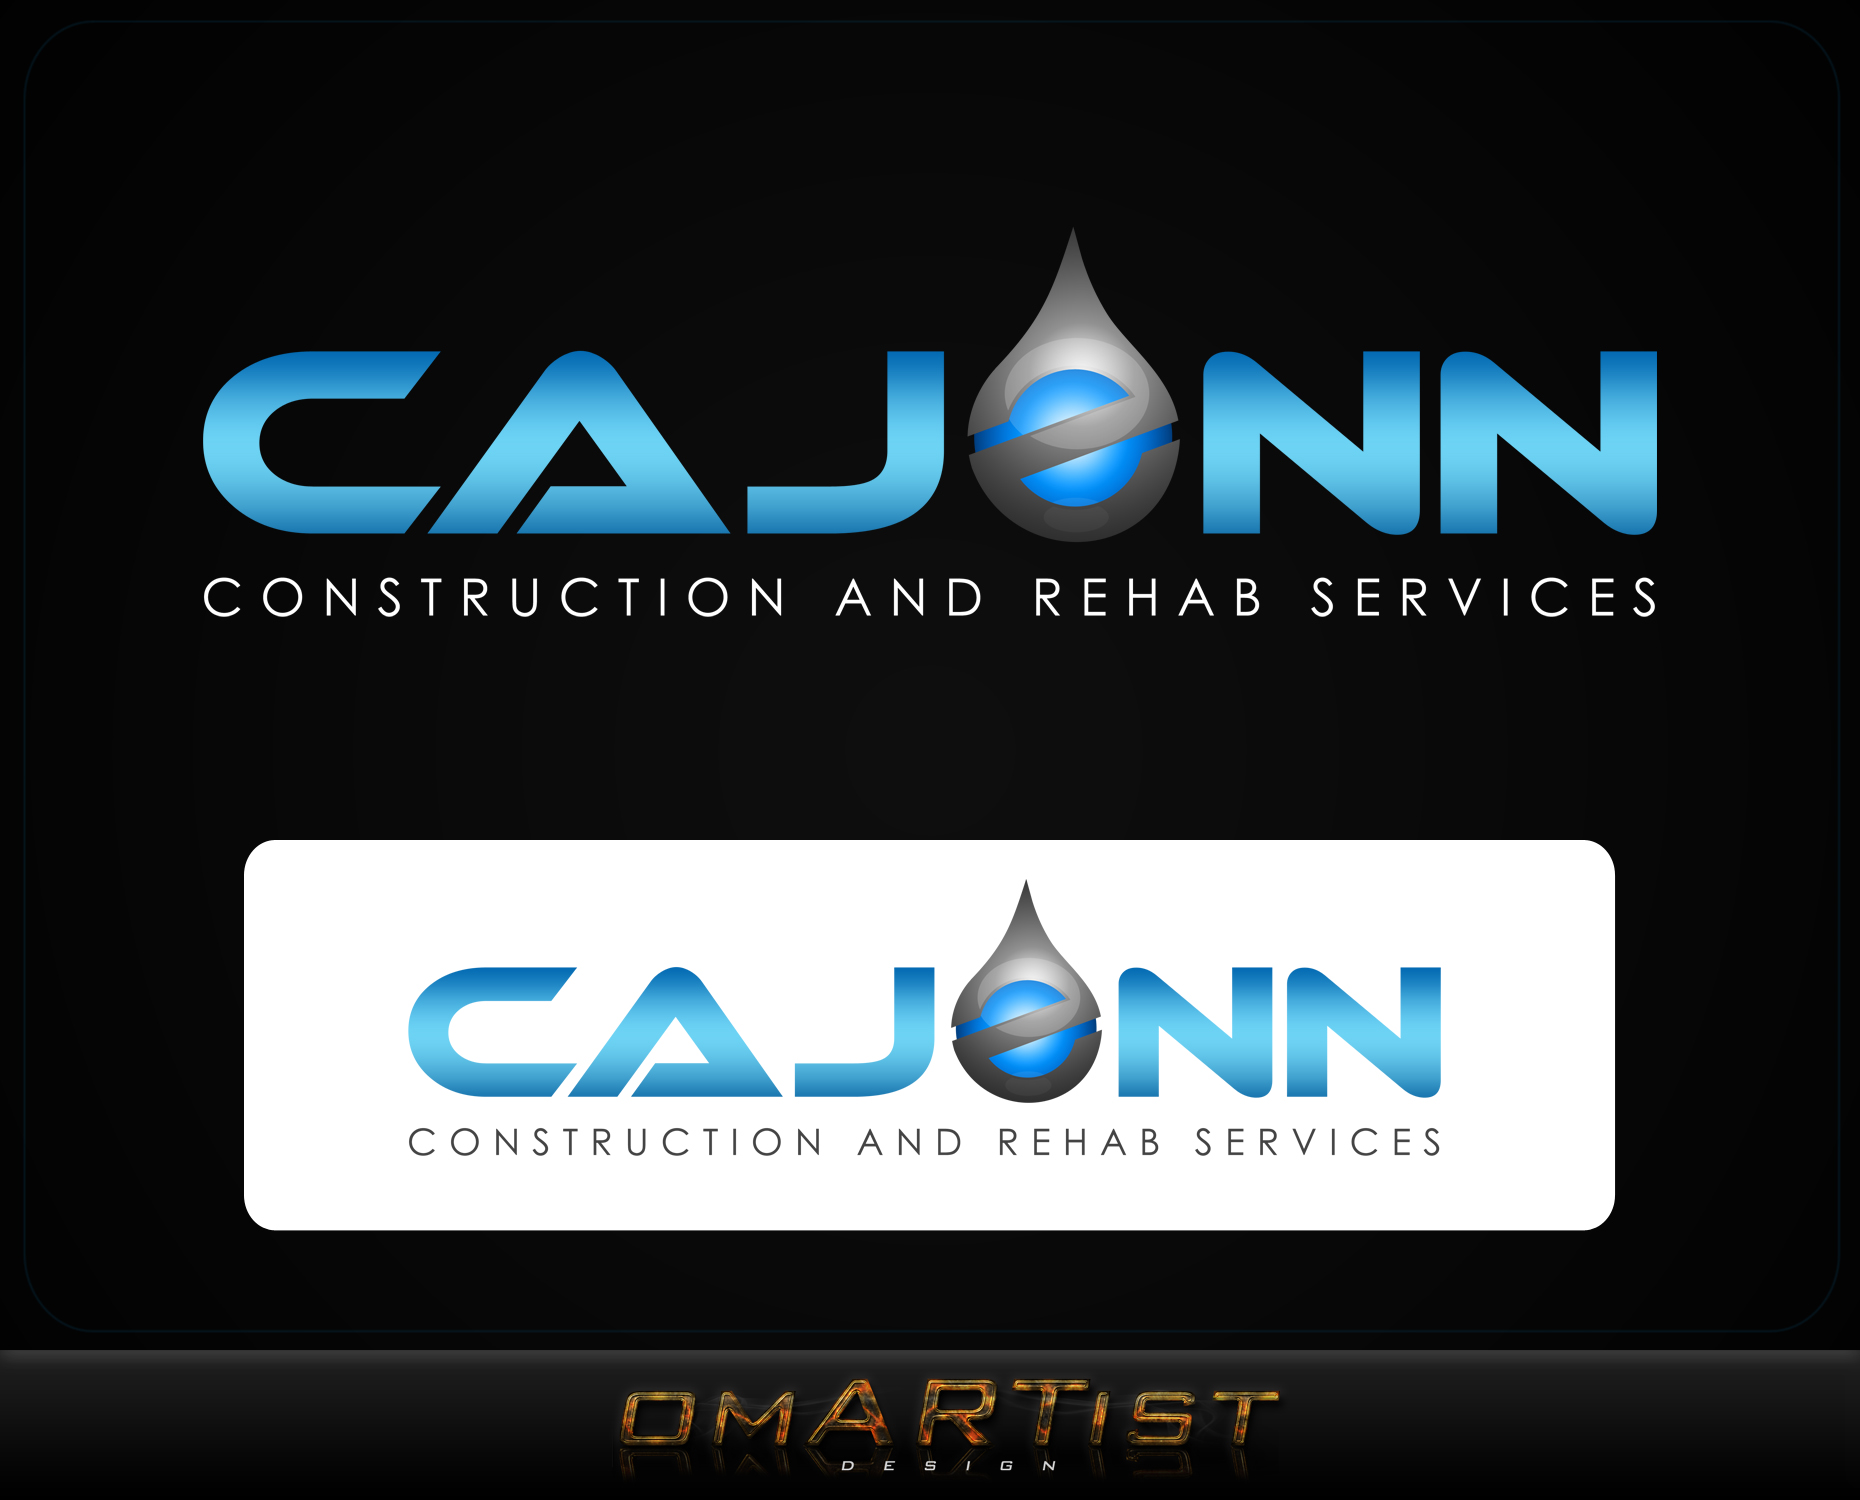 Logo Design by omARTist - Entry No. 66 in the Logo Design Contest New Logo Design for CaJenn Construction & Rehab Services.